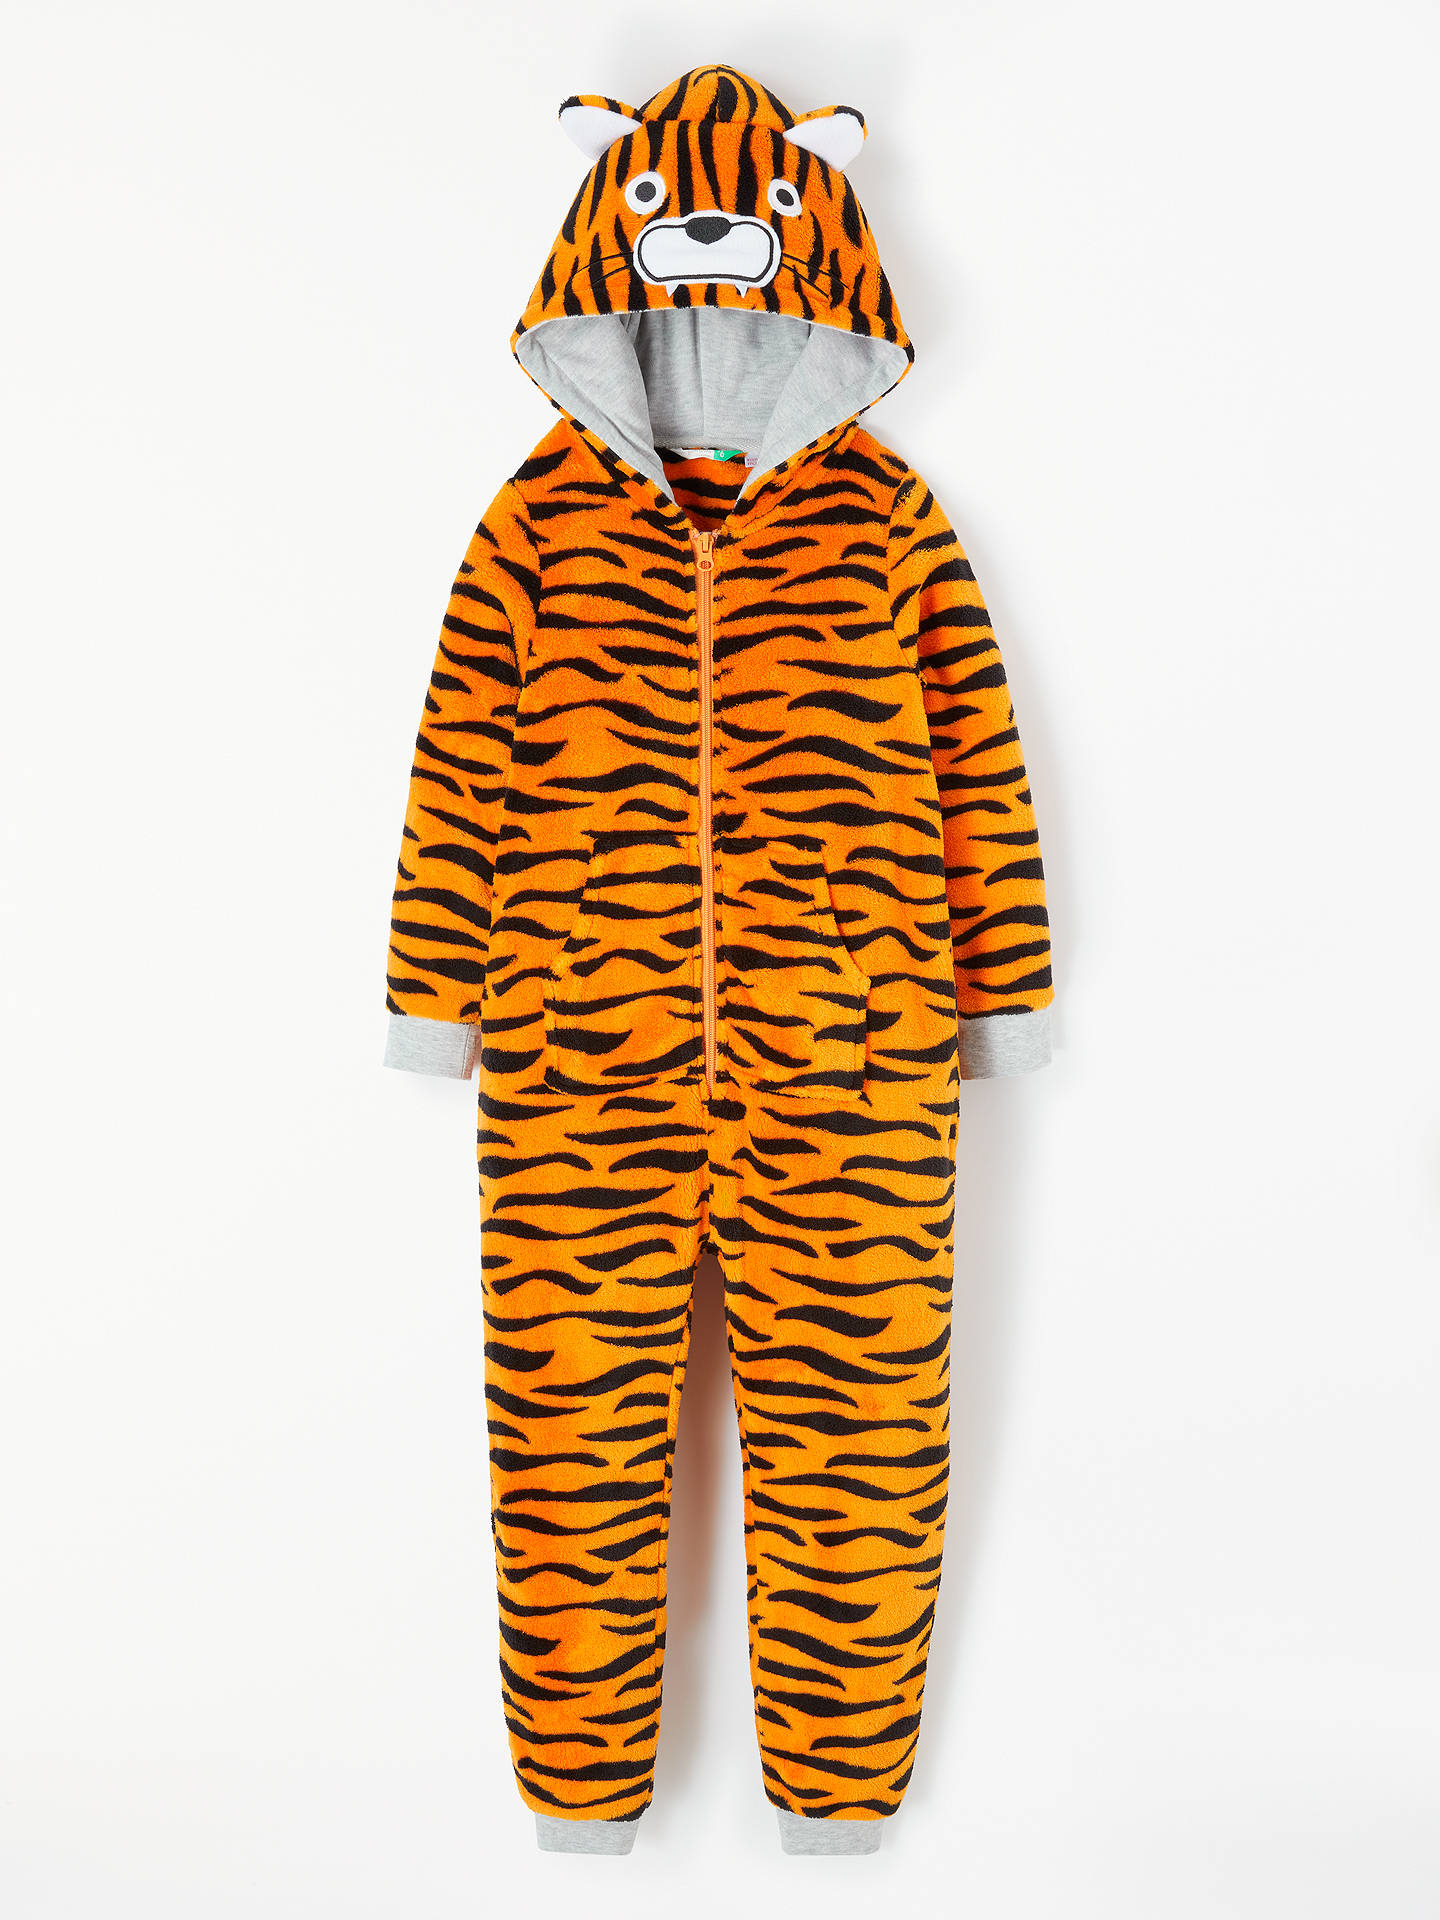 a8e0c5cb4500 Buy John Lewis   Partners Boys  Tiger Fleece Onesie